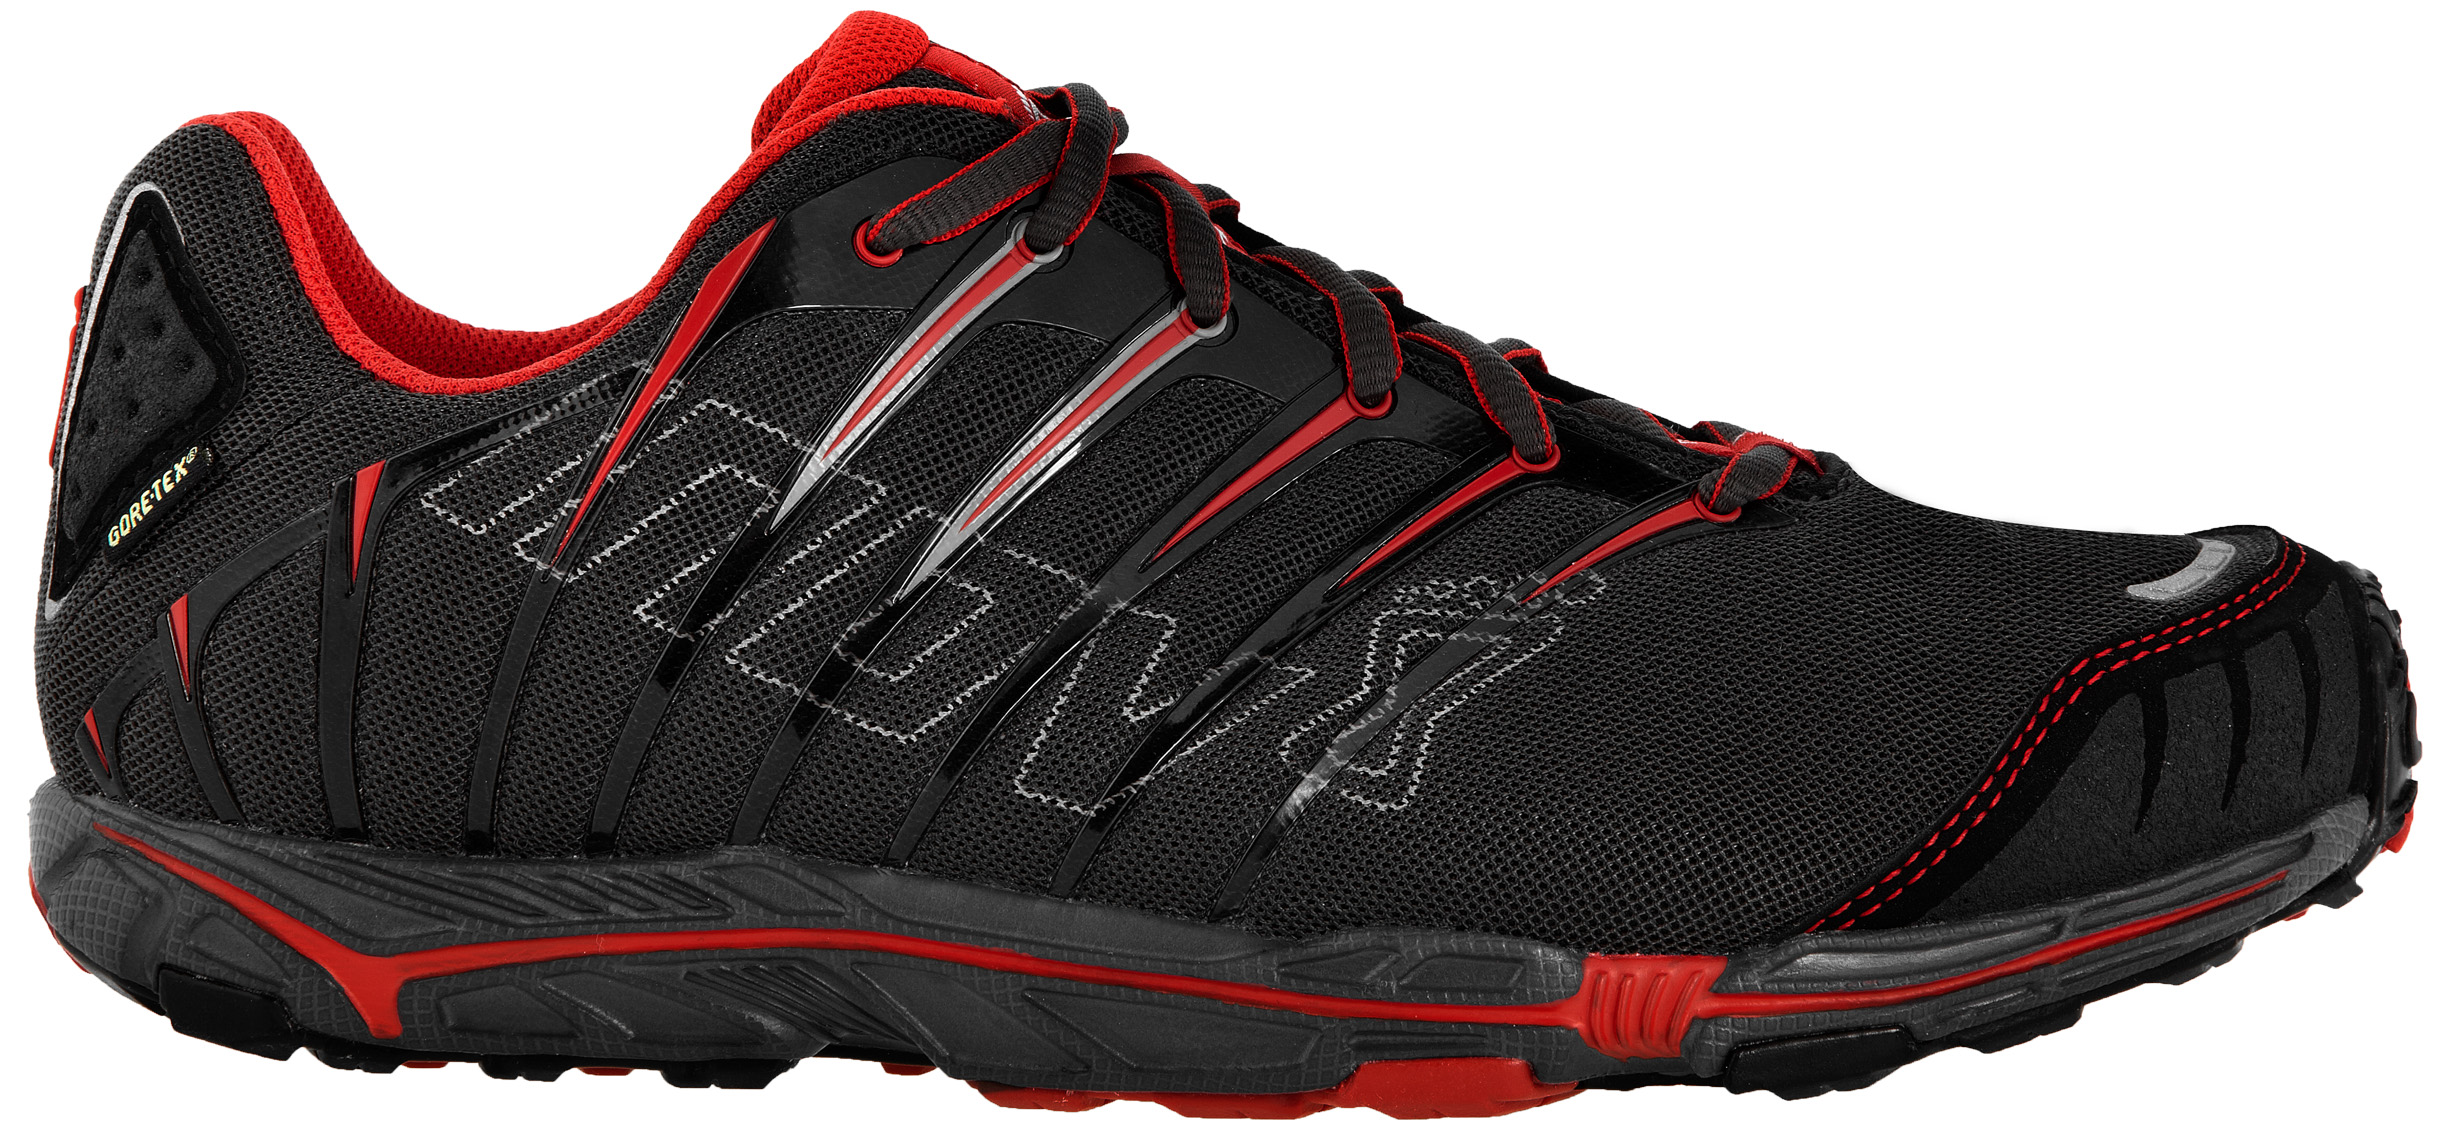 Terra Gore Tex Hiking Shoe Review North Face